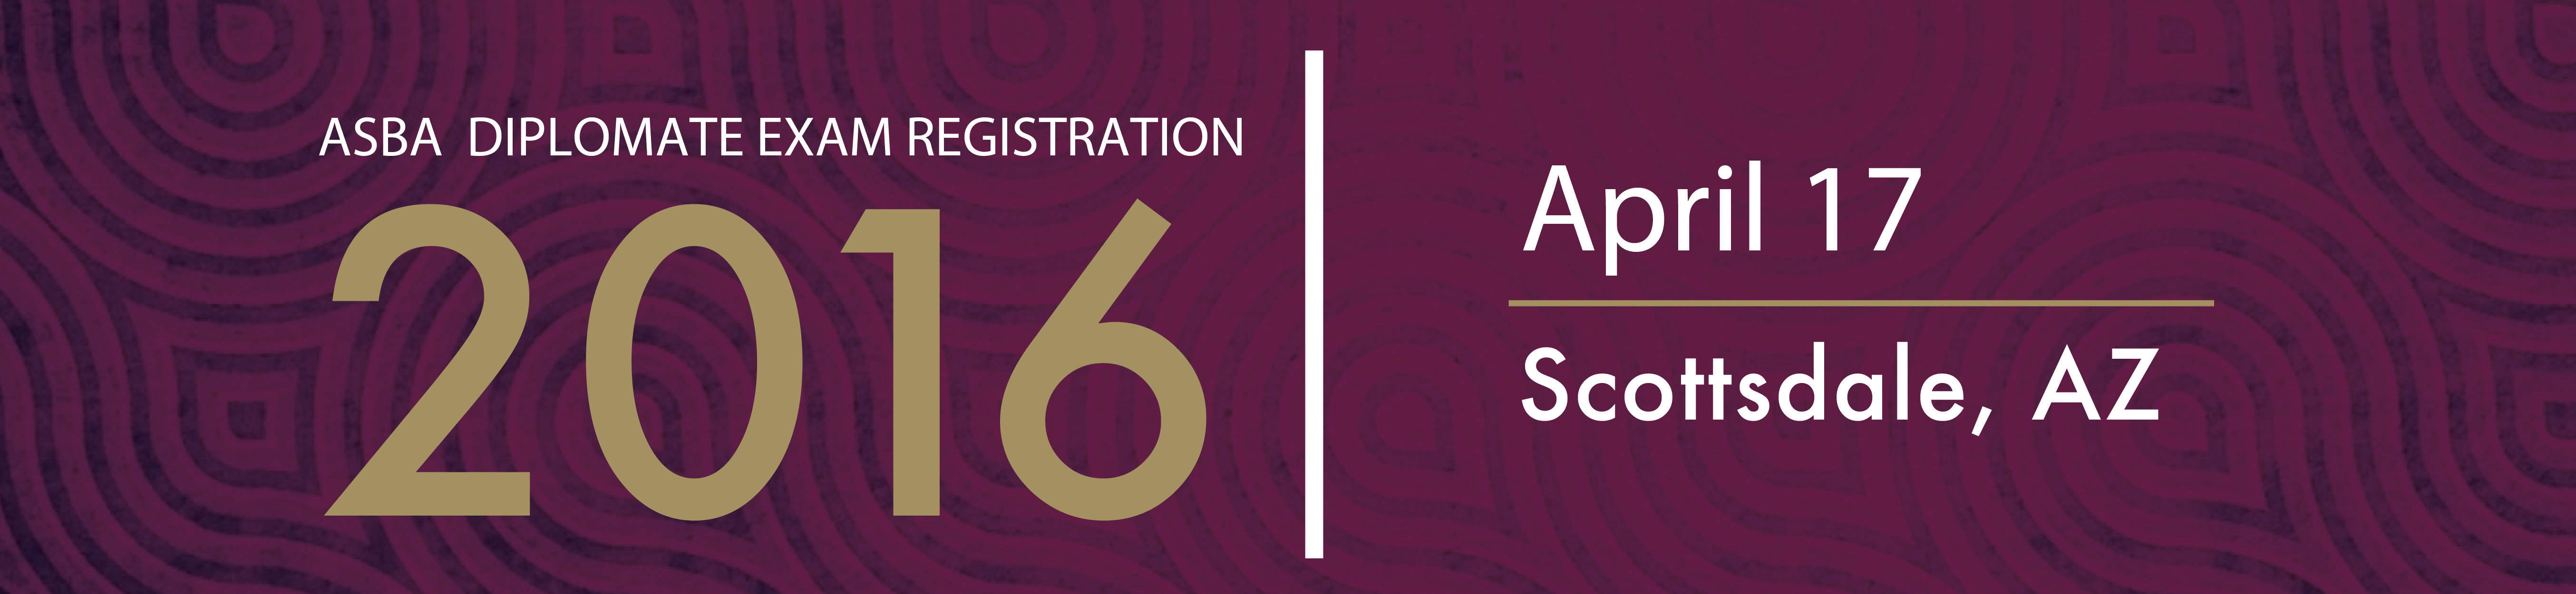 2016 ASBA Diplomate Exam Registration